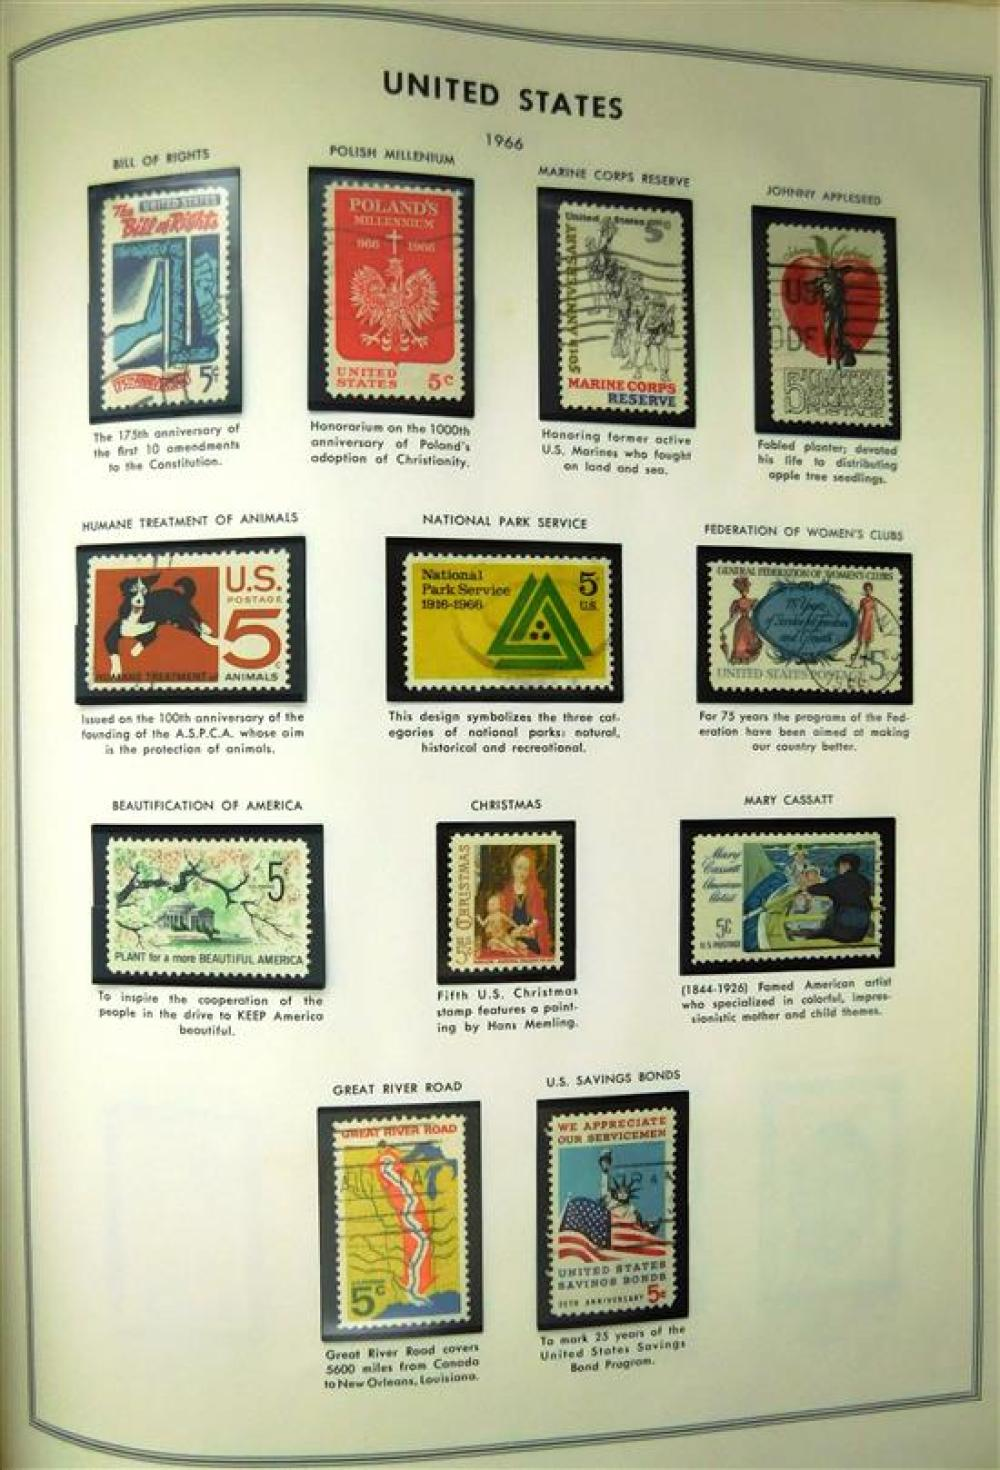 U.S. Liberty Stamp Album, most stamps are on black mounts; Highlighting Scott's #'s 10, 63, 65, 76, 78, 154, 191, 312. Majority of s.